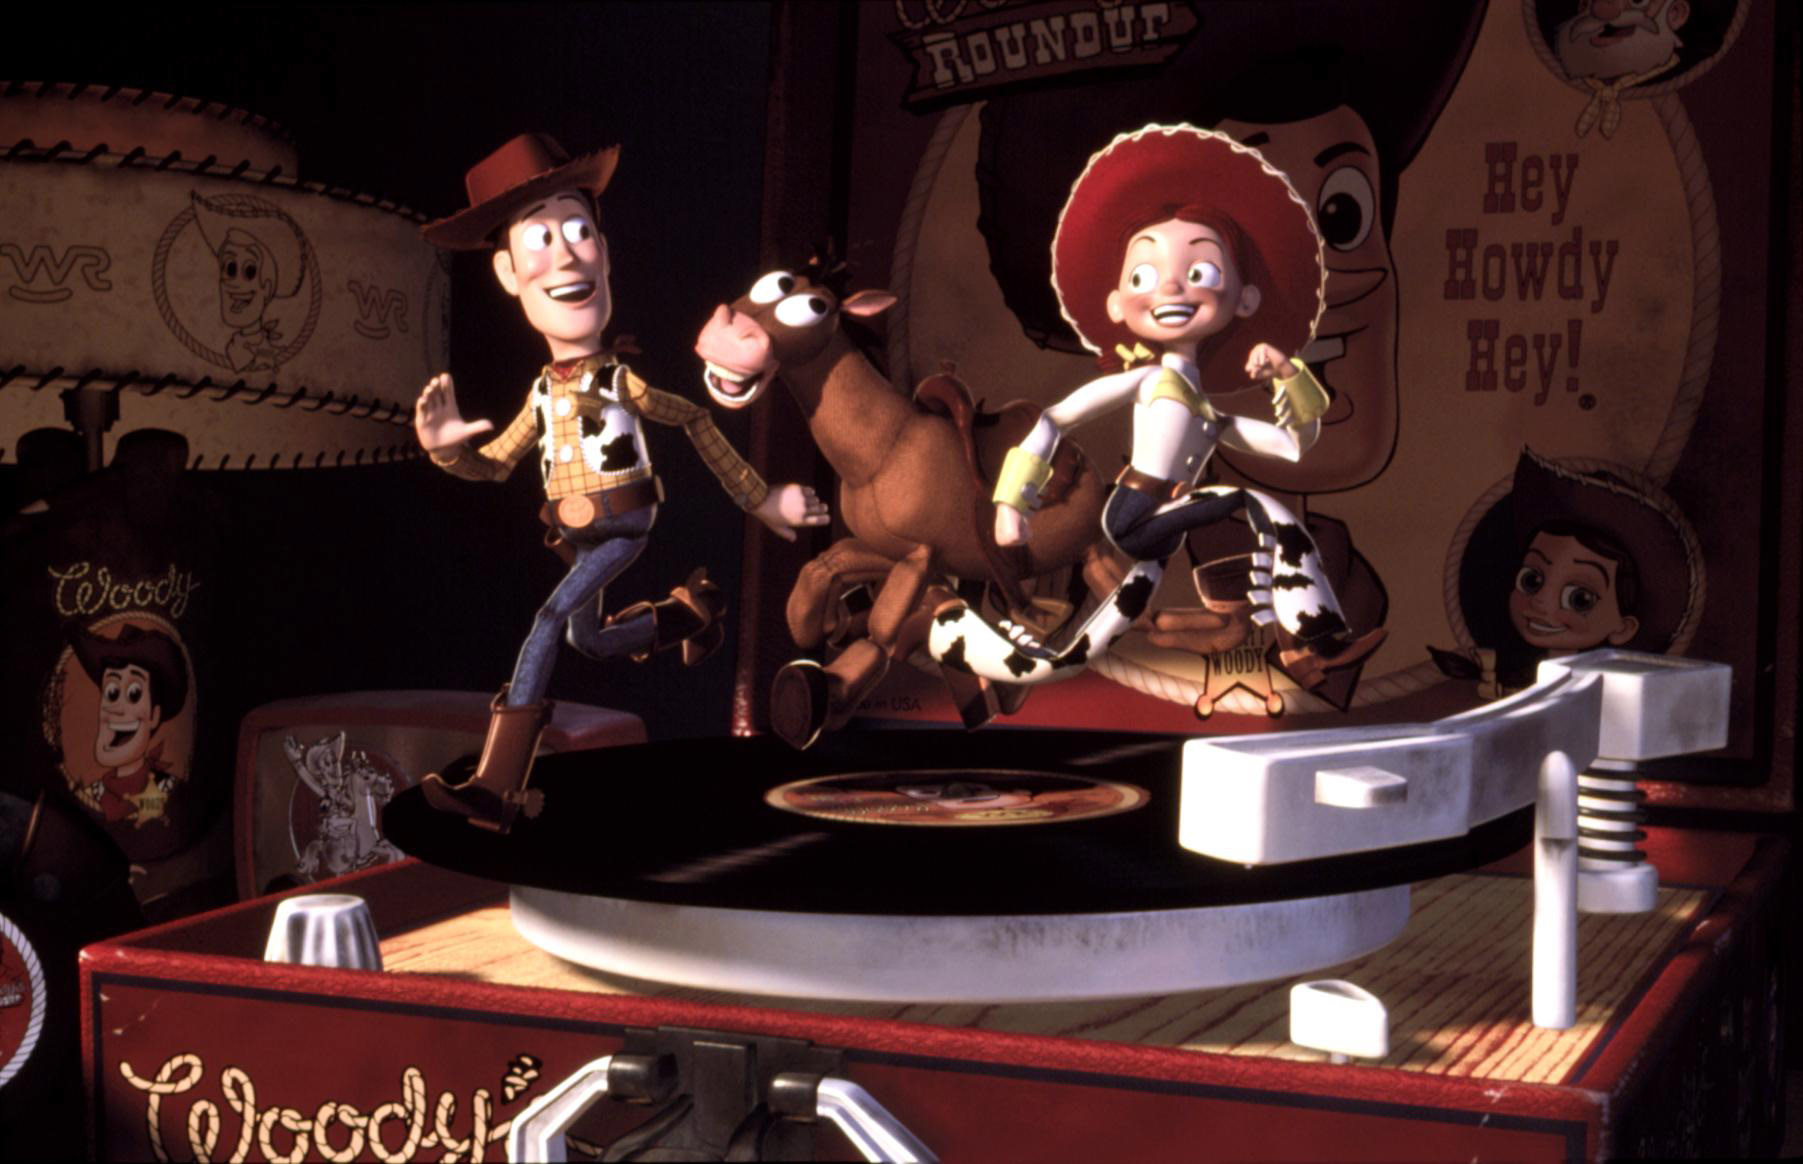 Woody, Bullseye, and Jessie the Cowgirl running on a record player